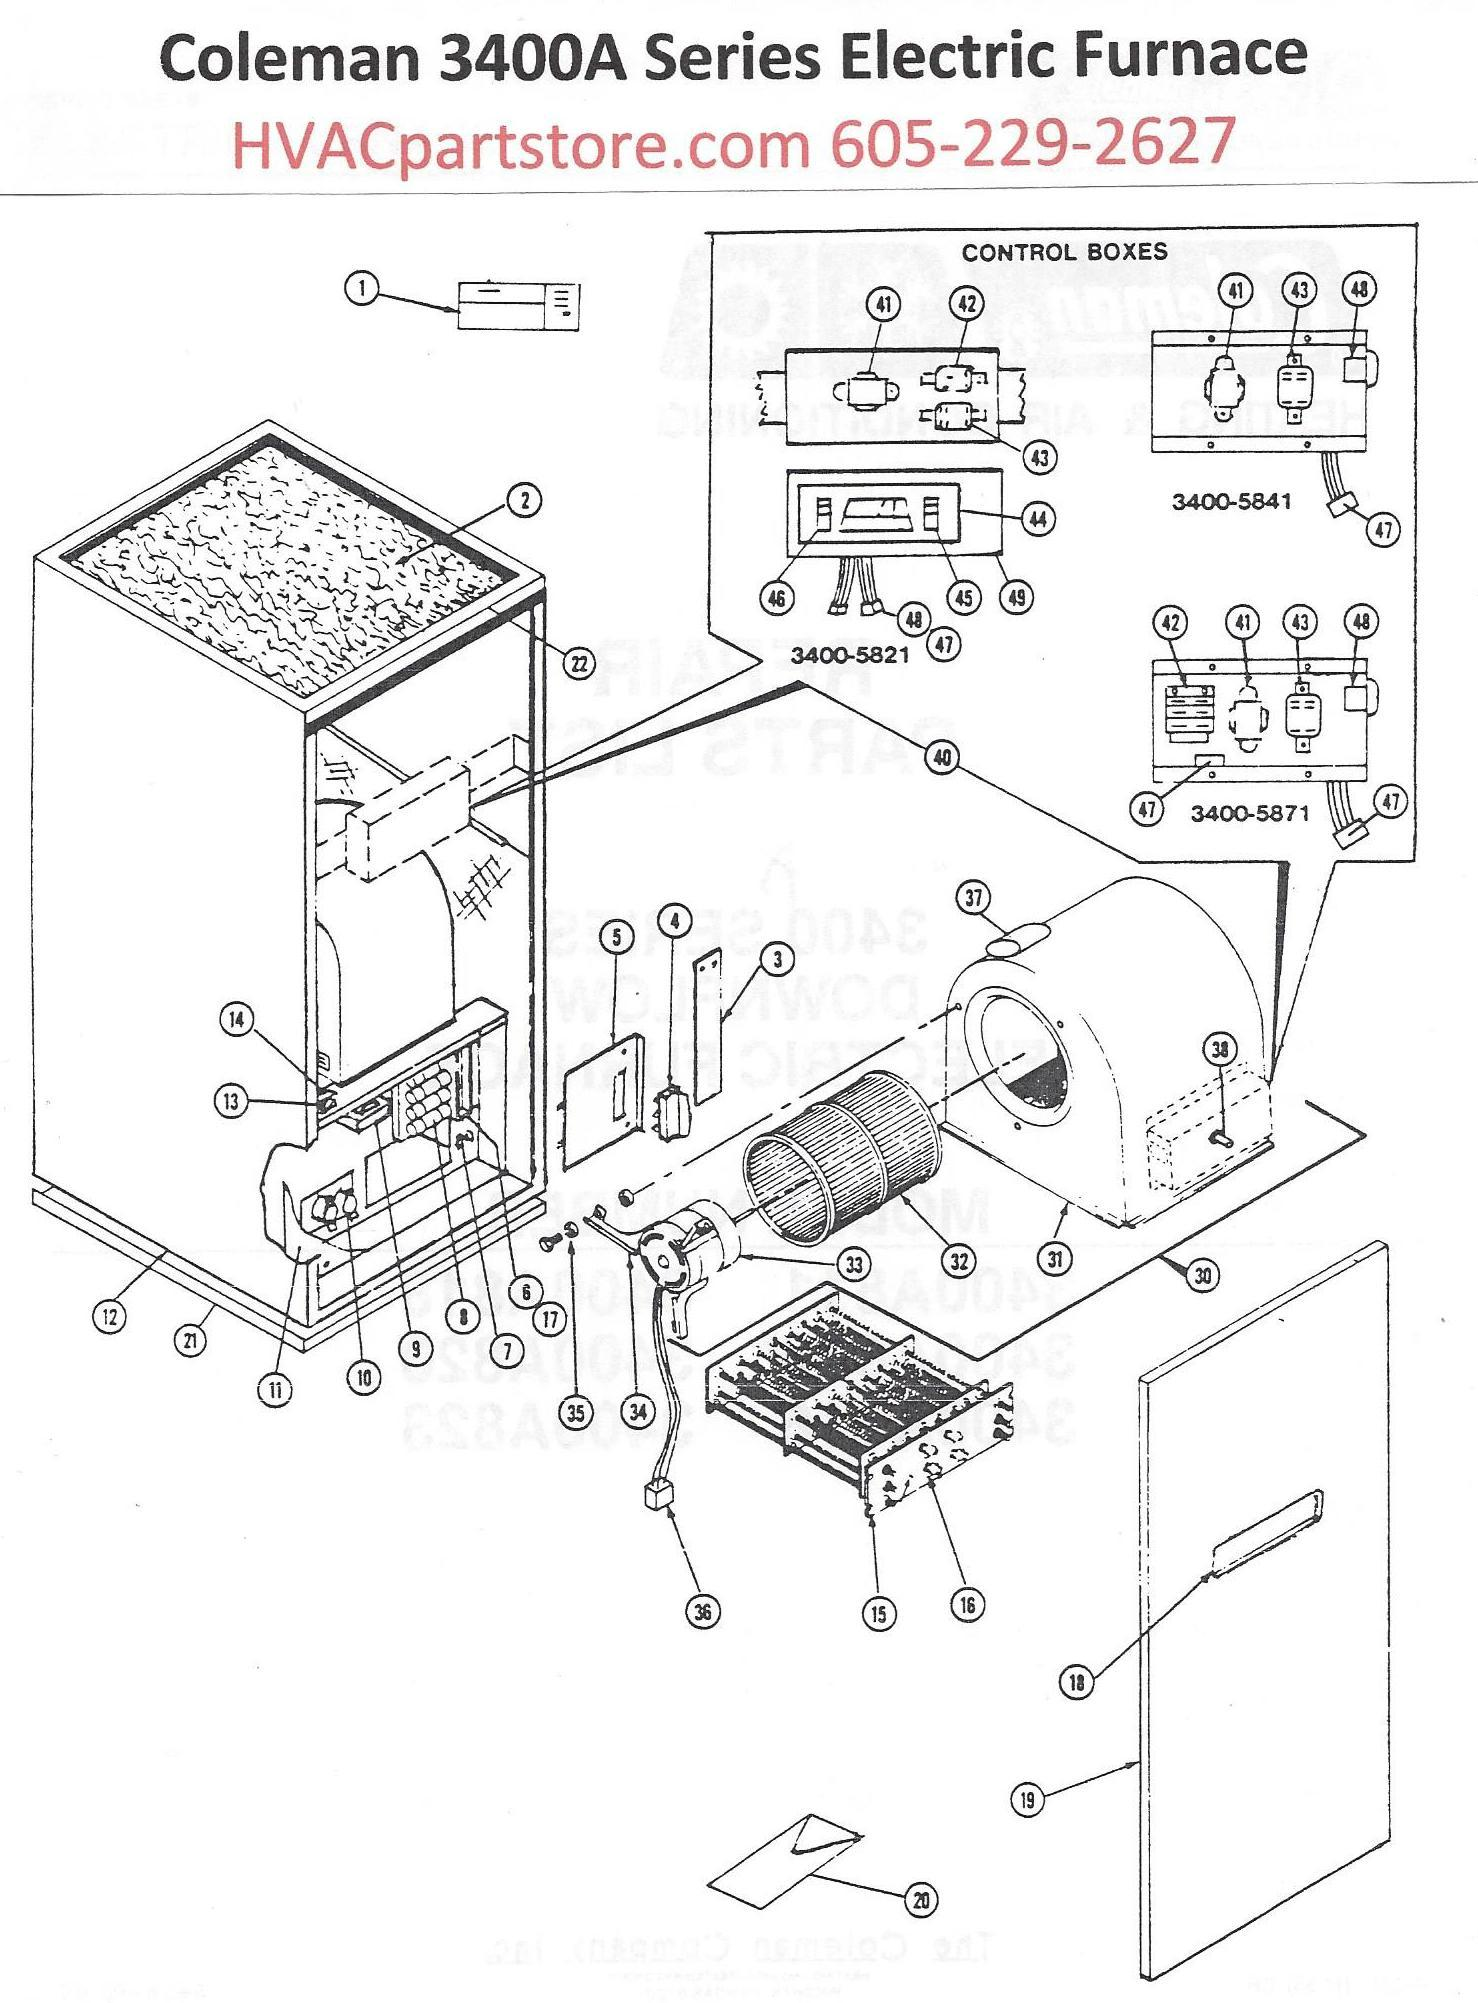 Electric Furnace Wiring Diagrams View